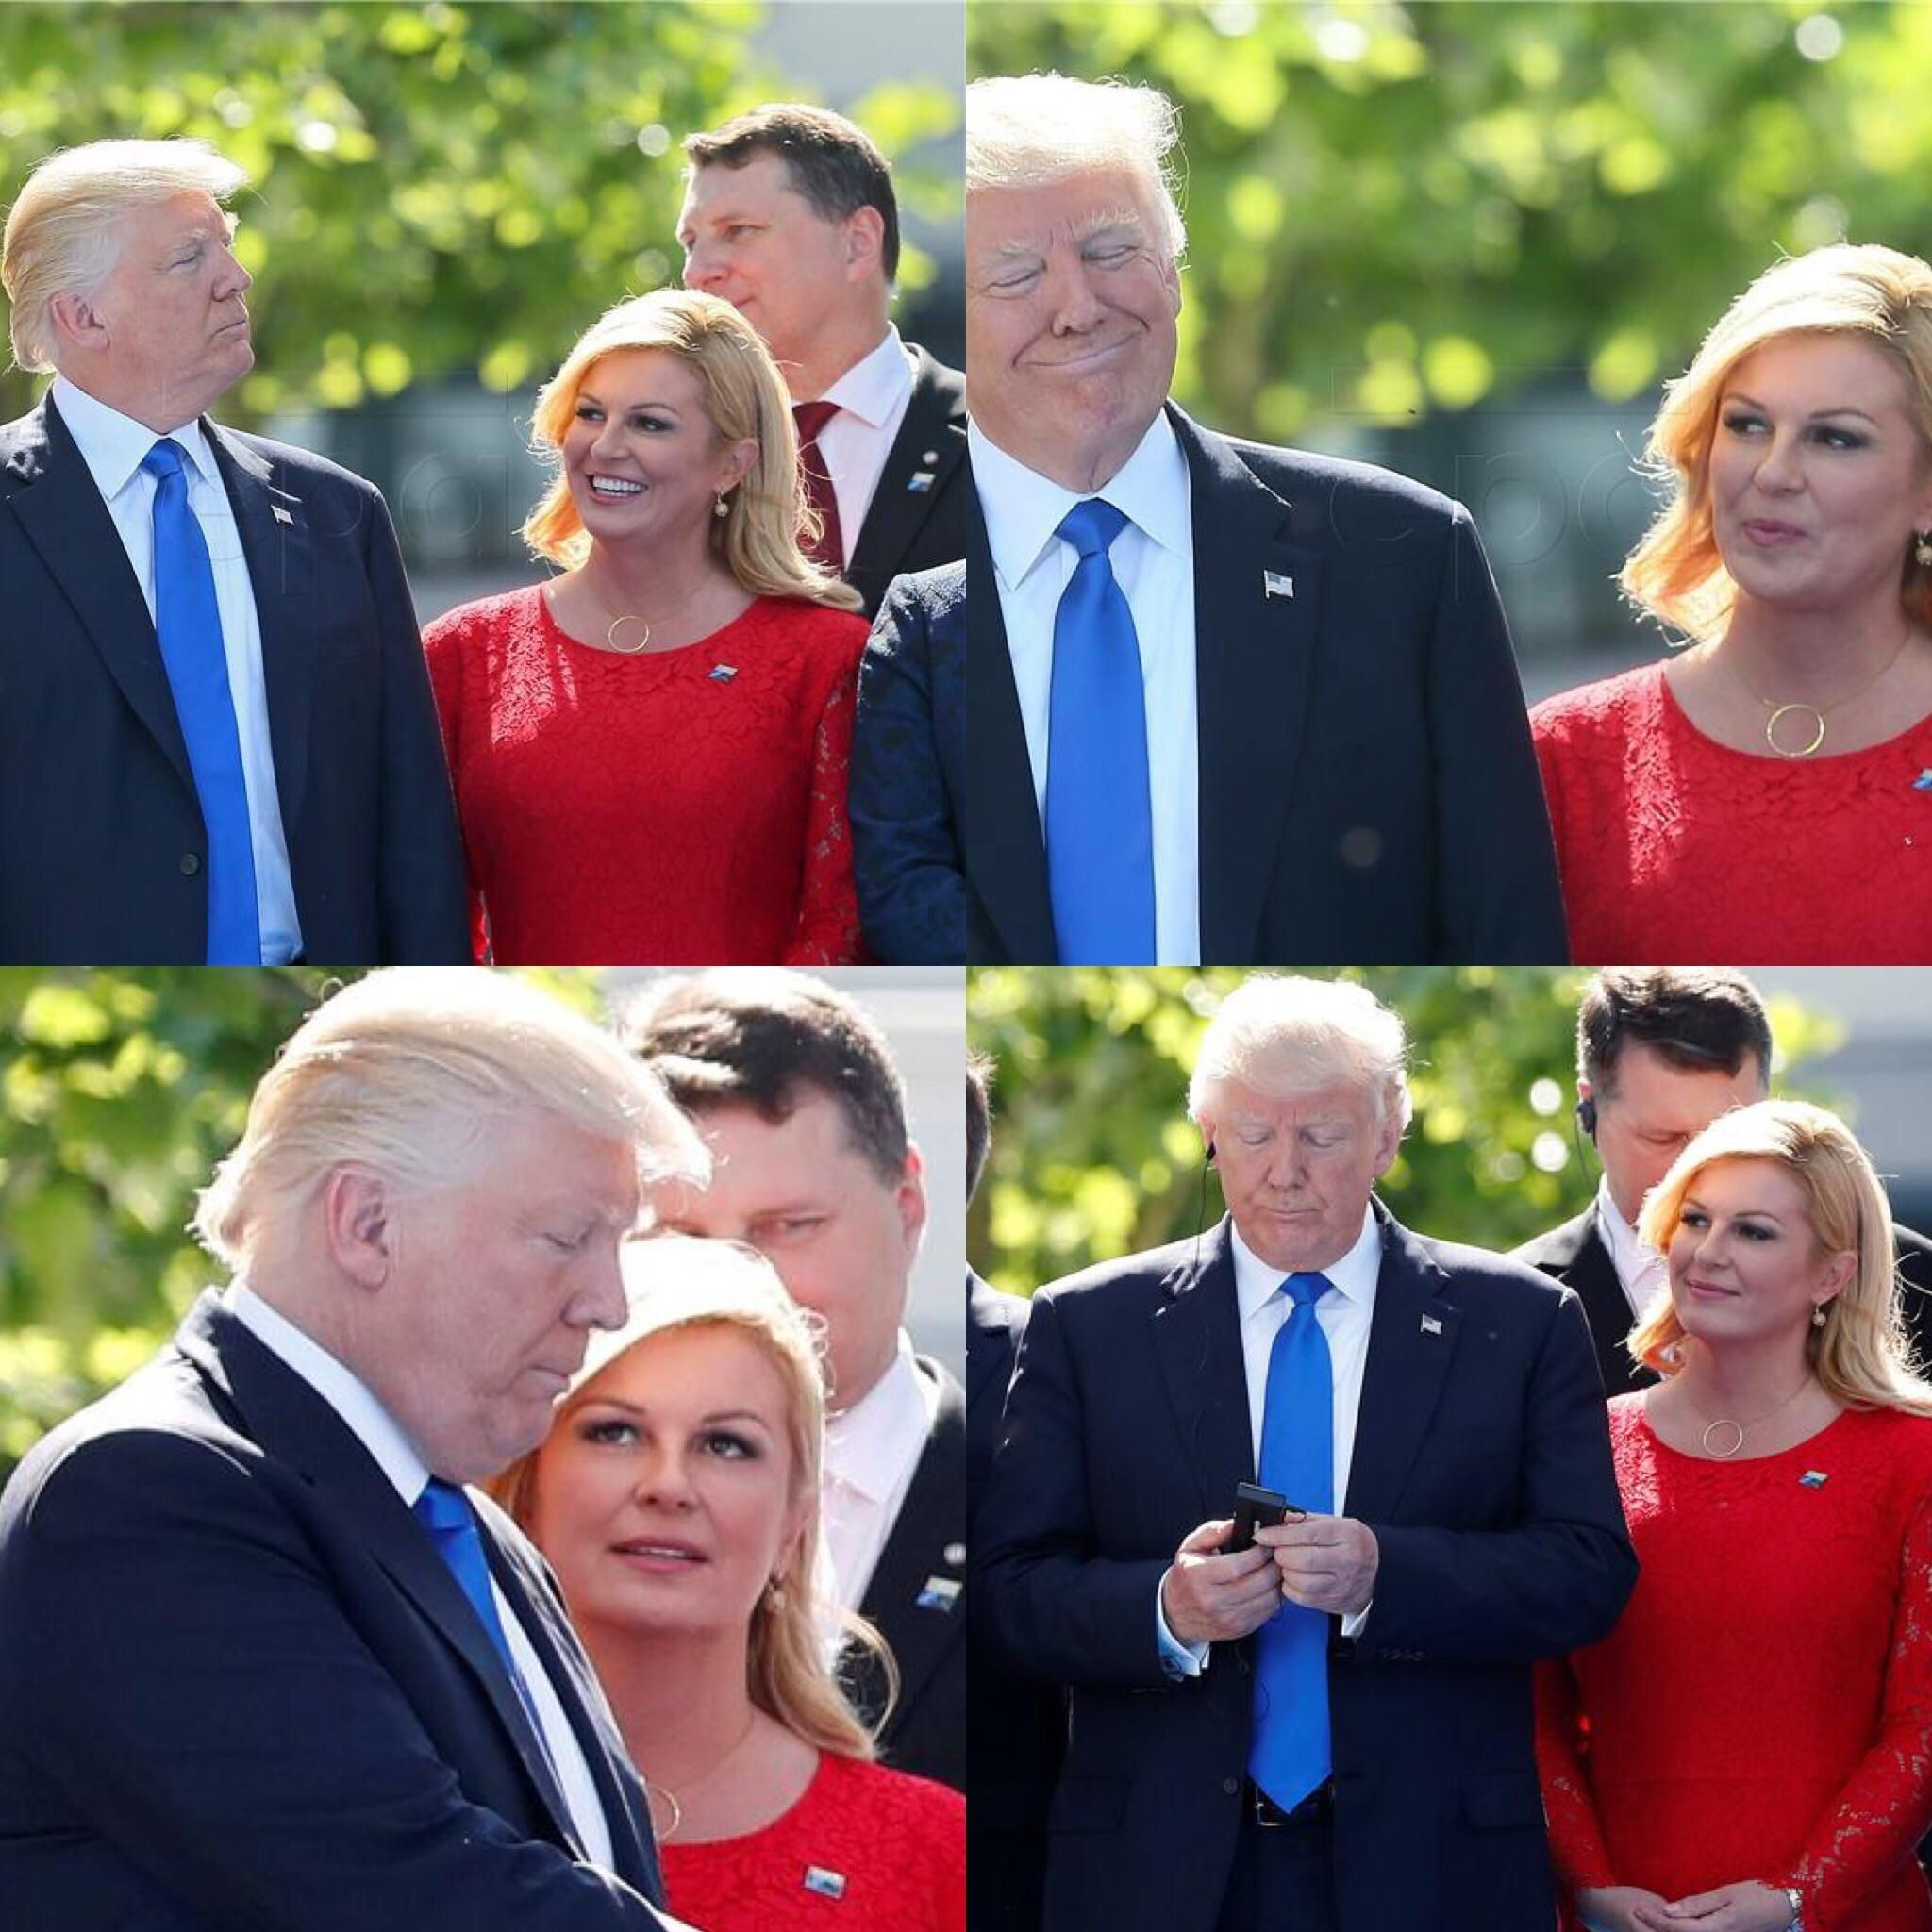 Find Someone That Looks At You The Way Kolinda Grabar Kitarovi